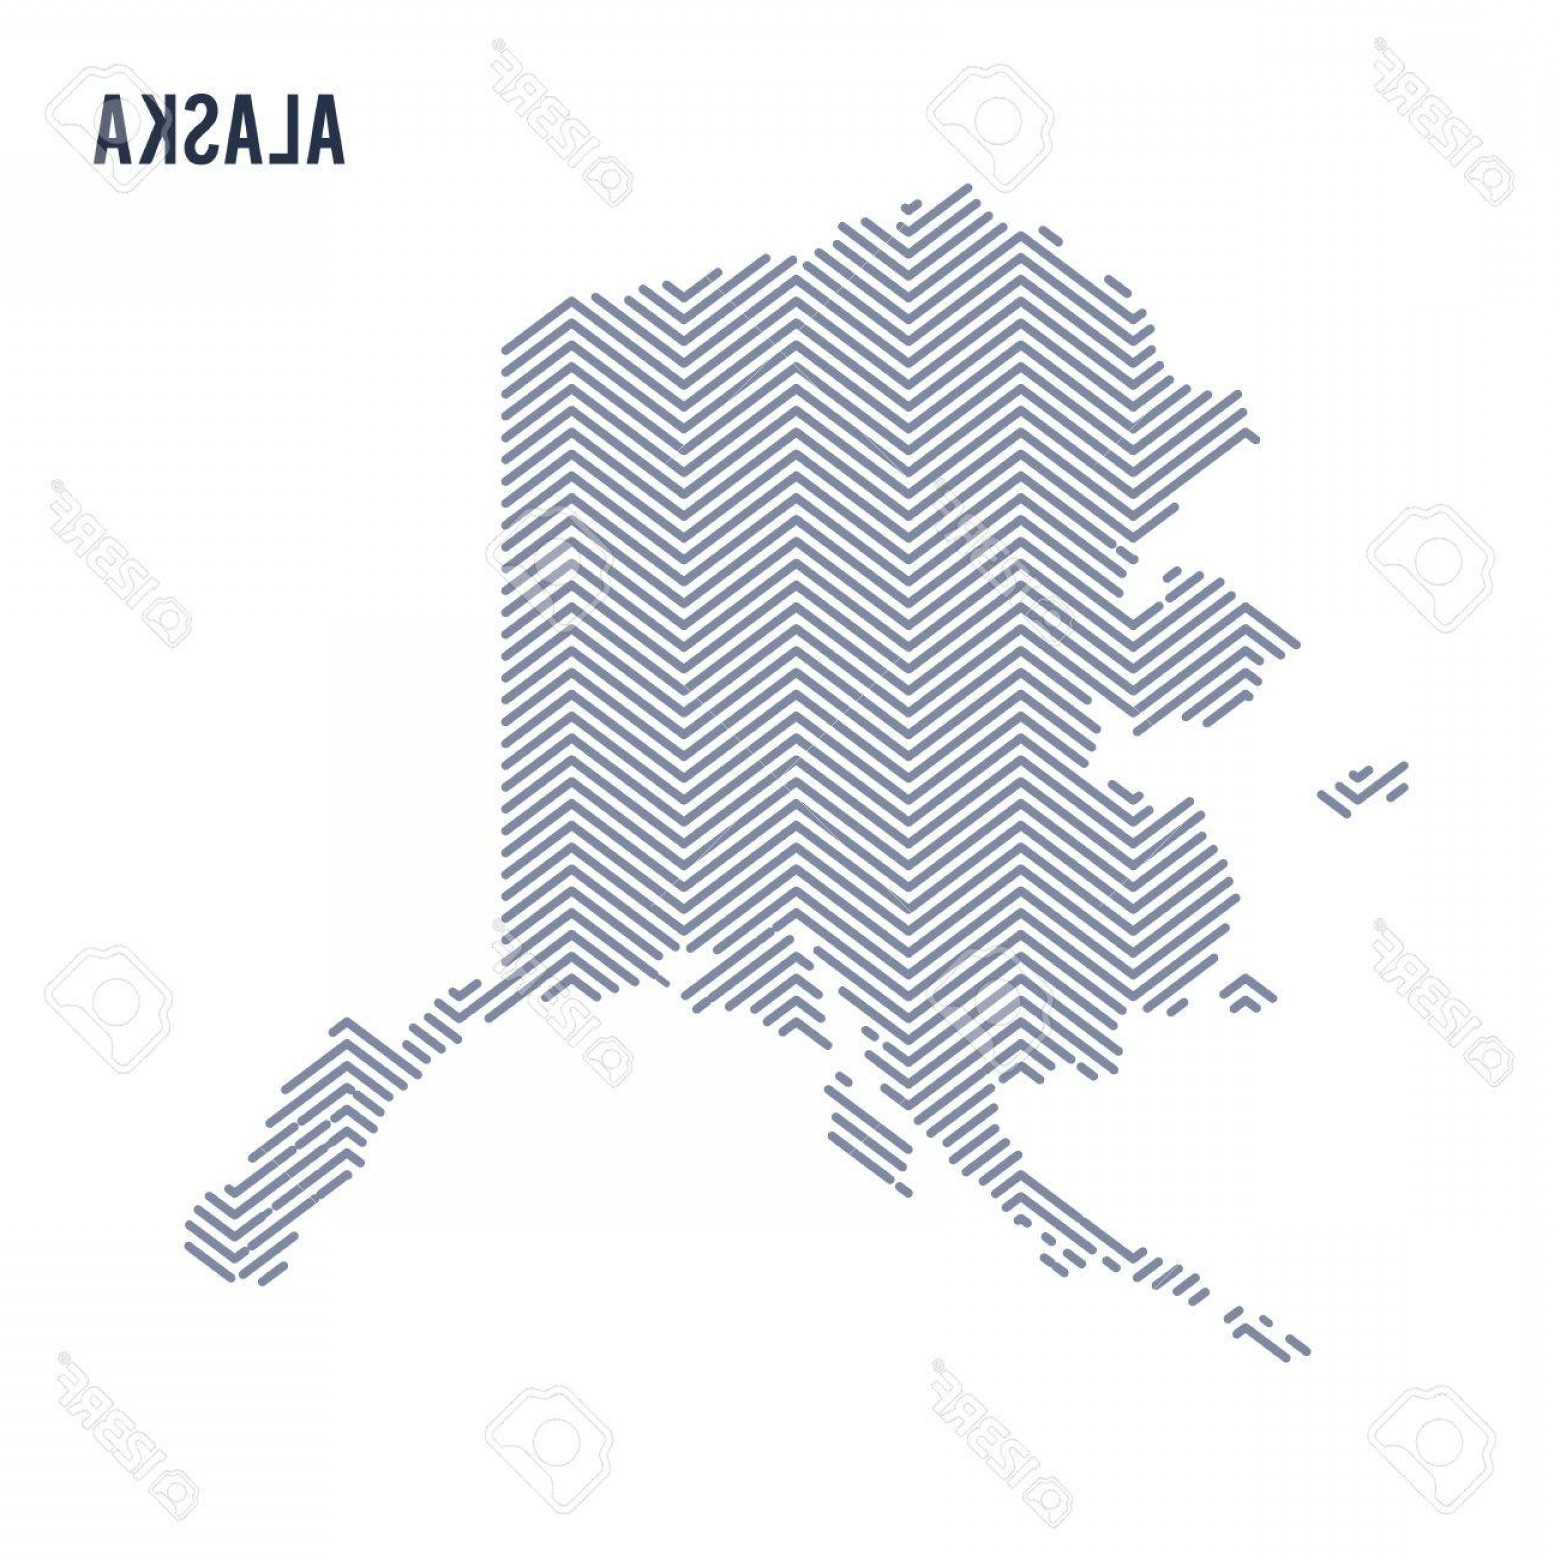 Alaska State White Background Vectors: Photostock Vector Vector Abstract Hatched Map Of State Of Alaska Isolated On A White Background Travel Vector Illustra